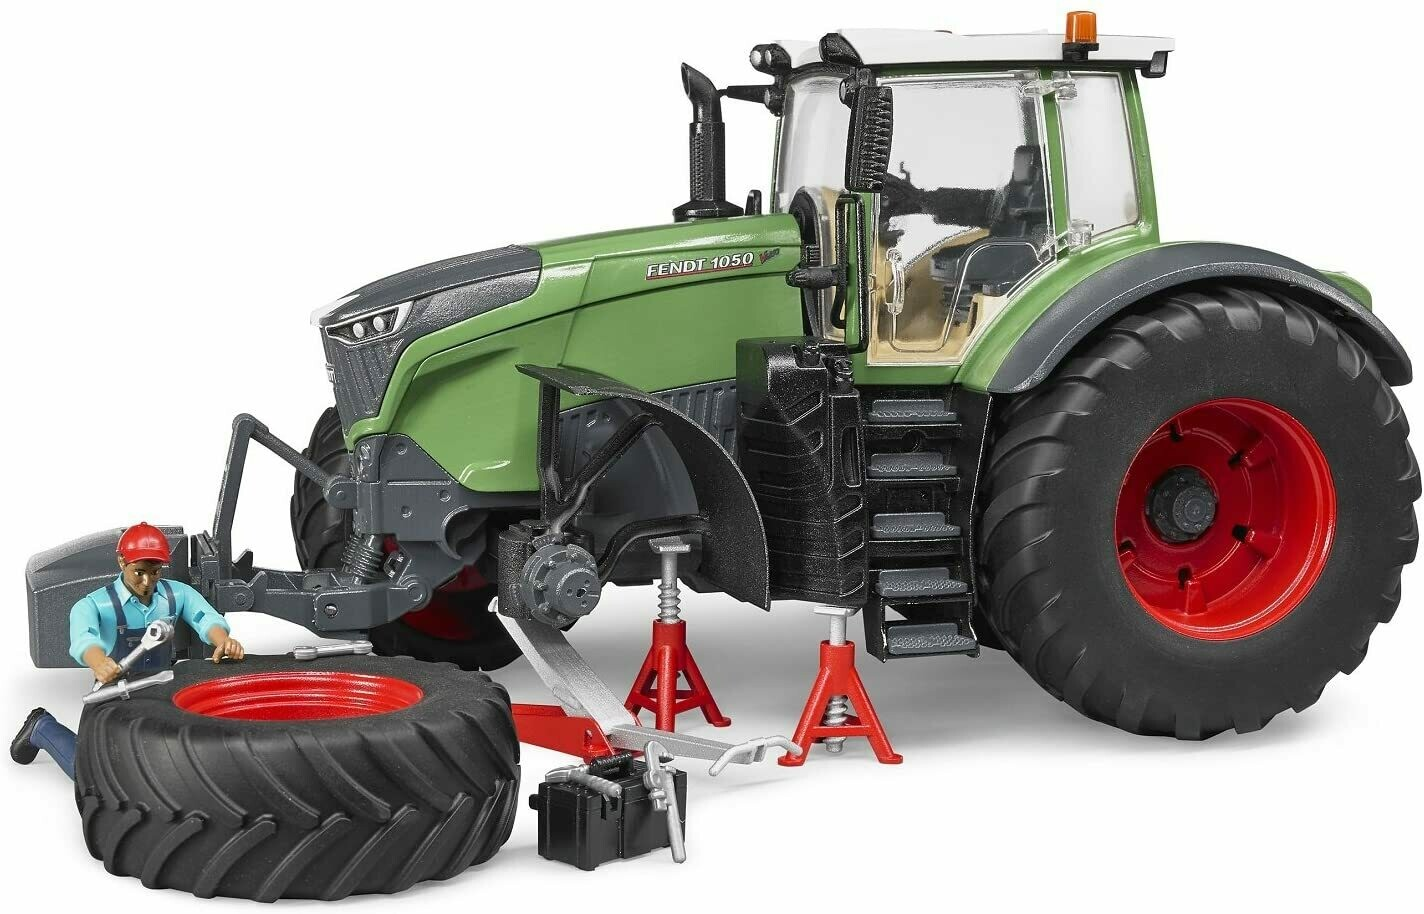 BRUDER; Fendt X 1000 Tractor W Repair Accessories